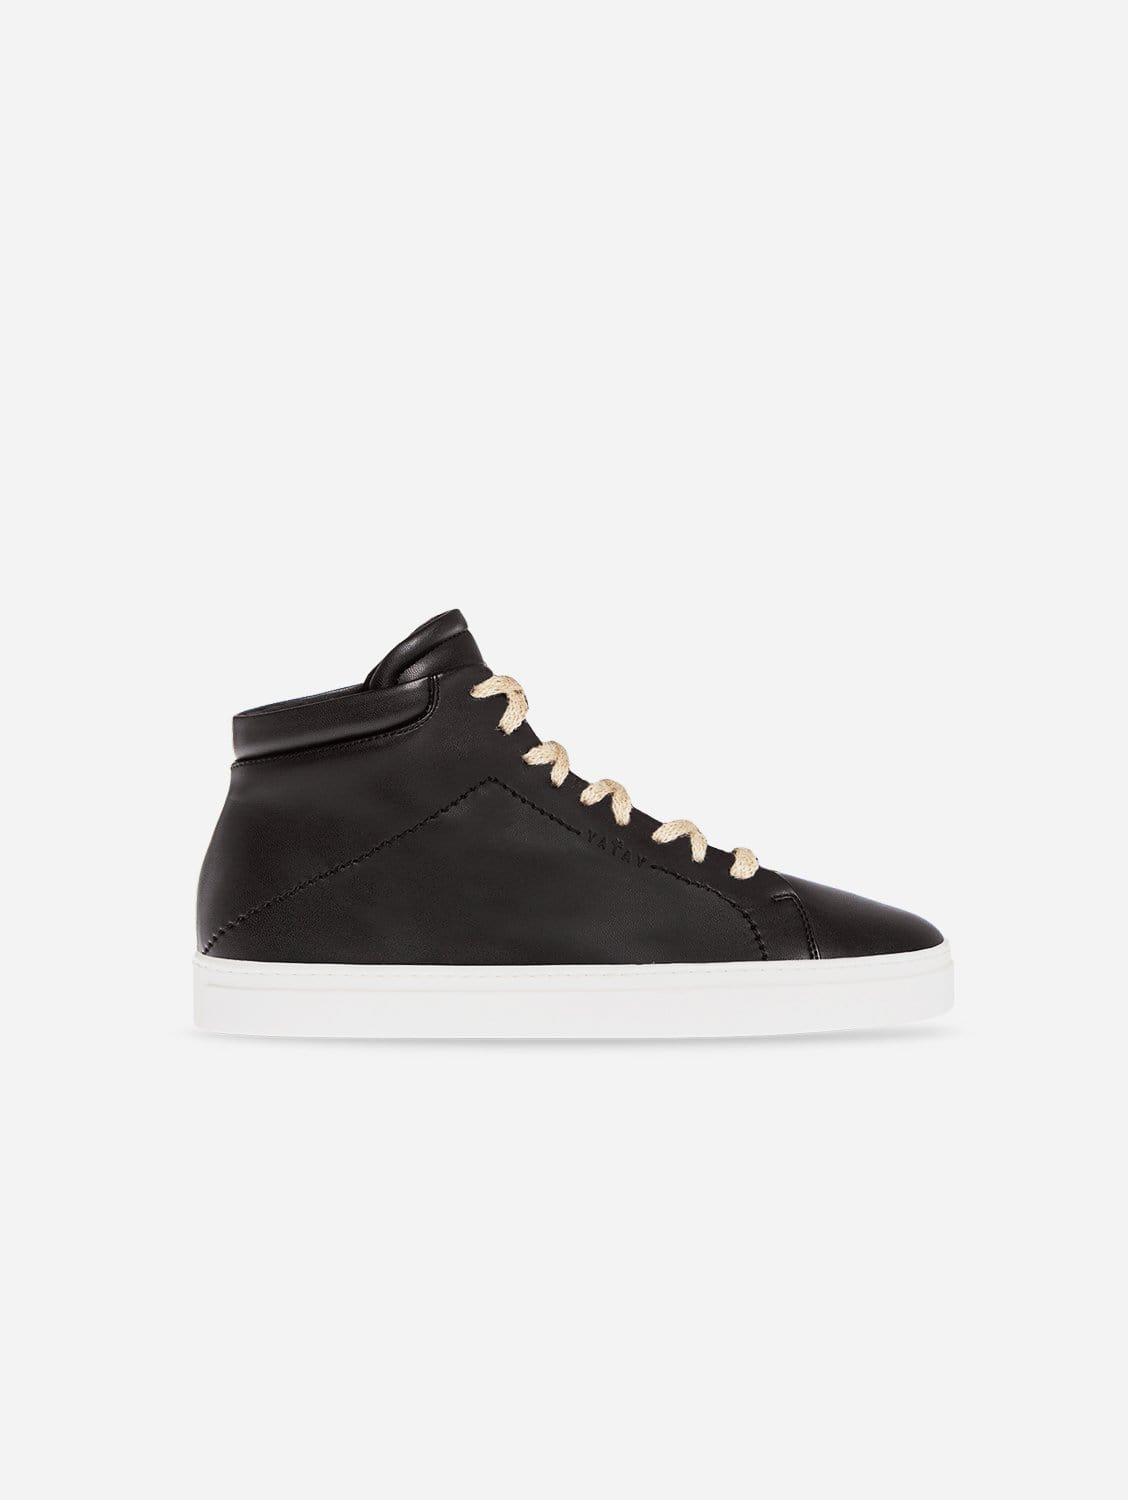 Neven Vegan Leather High-Top Trainer | Slate Black & White Sole